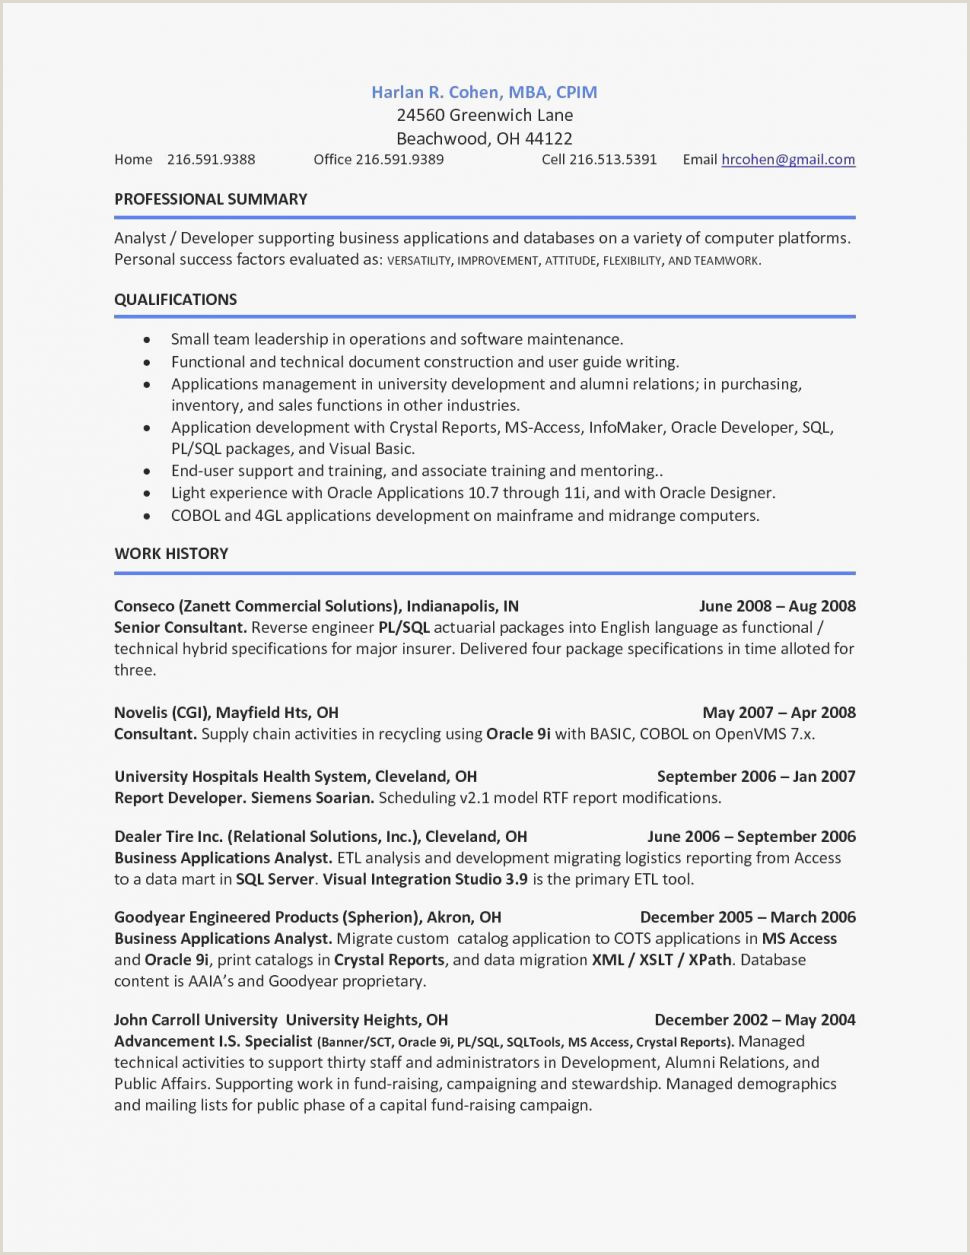 Hairstyles Basic Resume Examples Stunning Dealer Resume